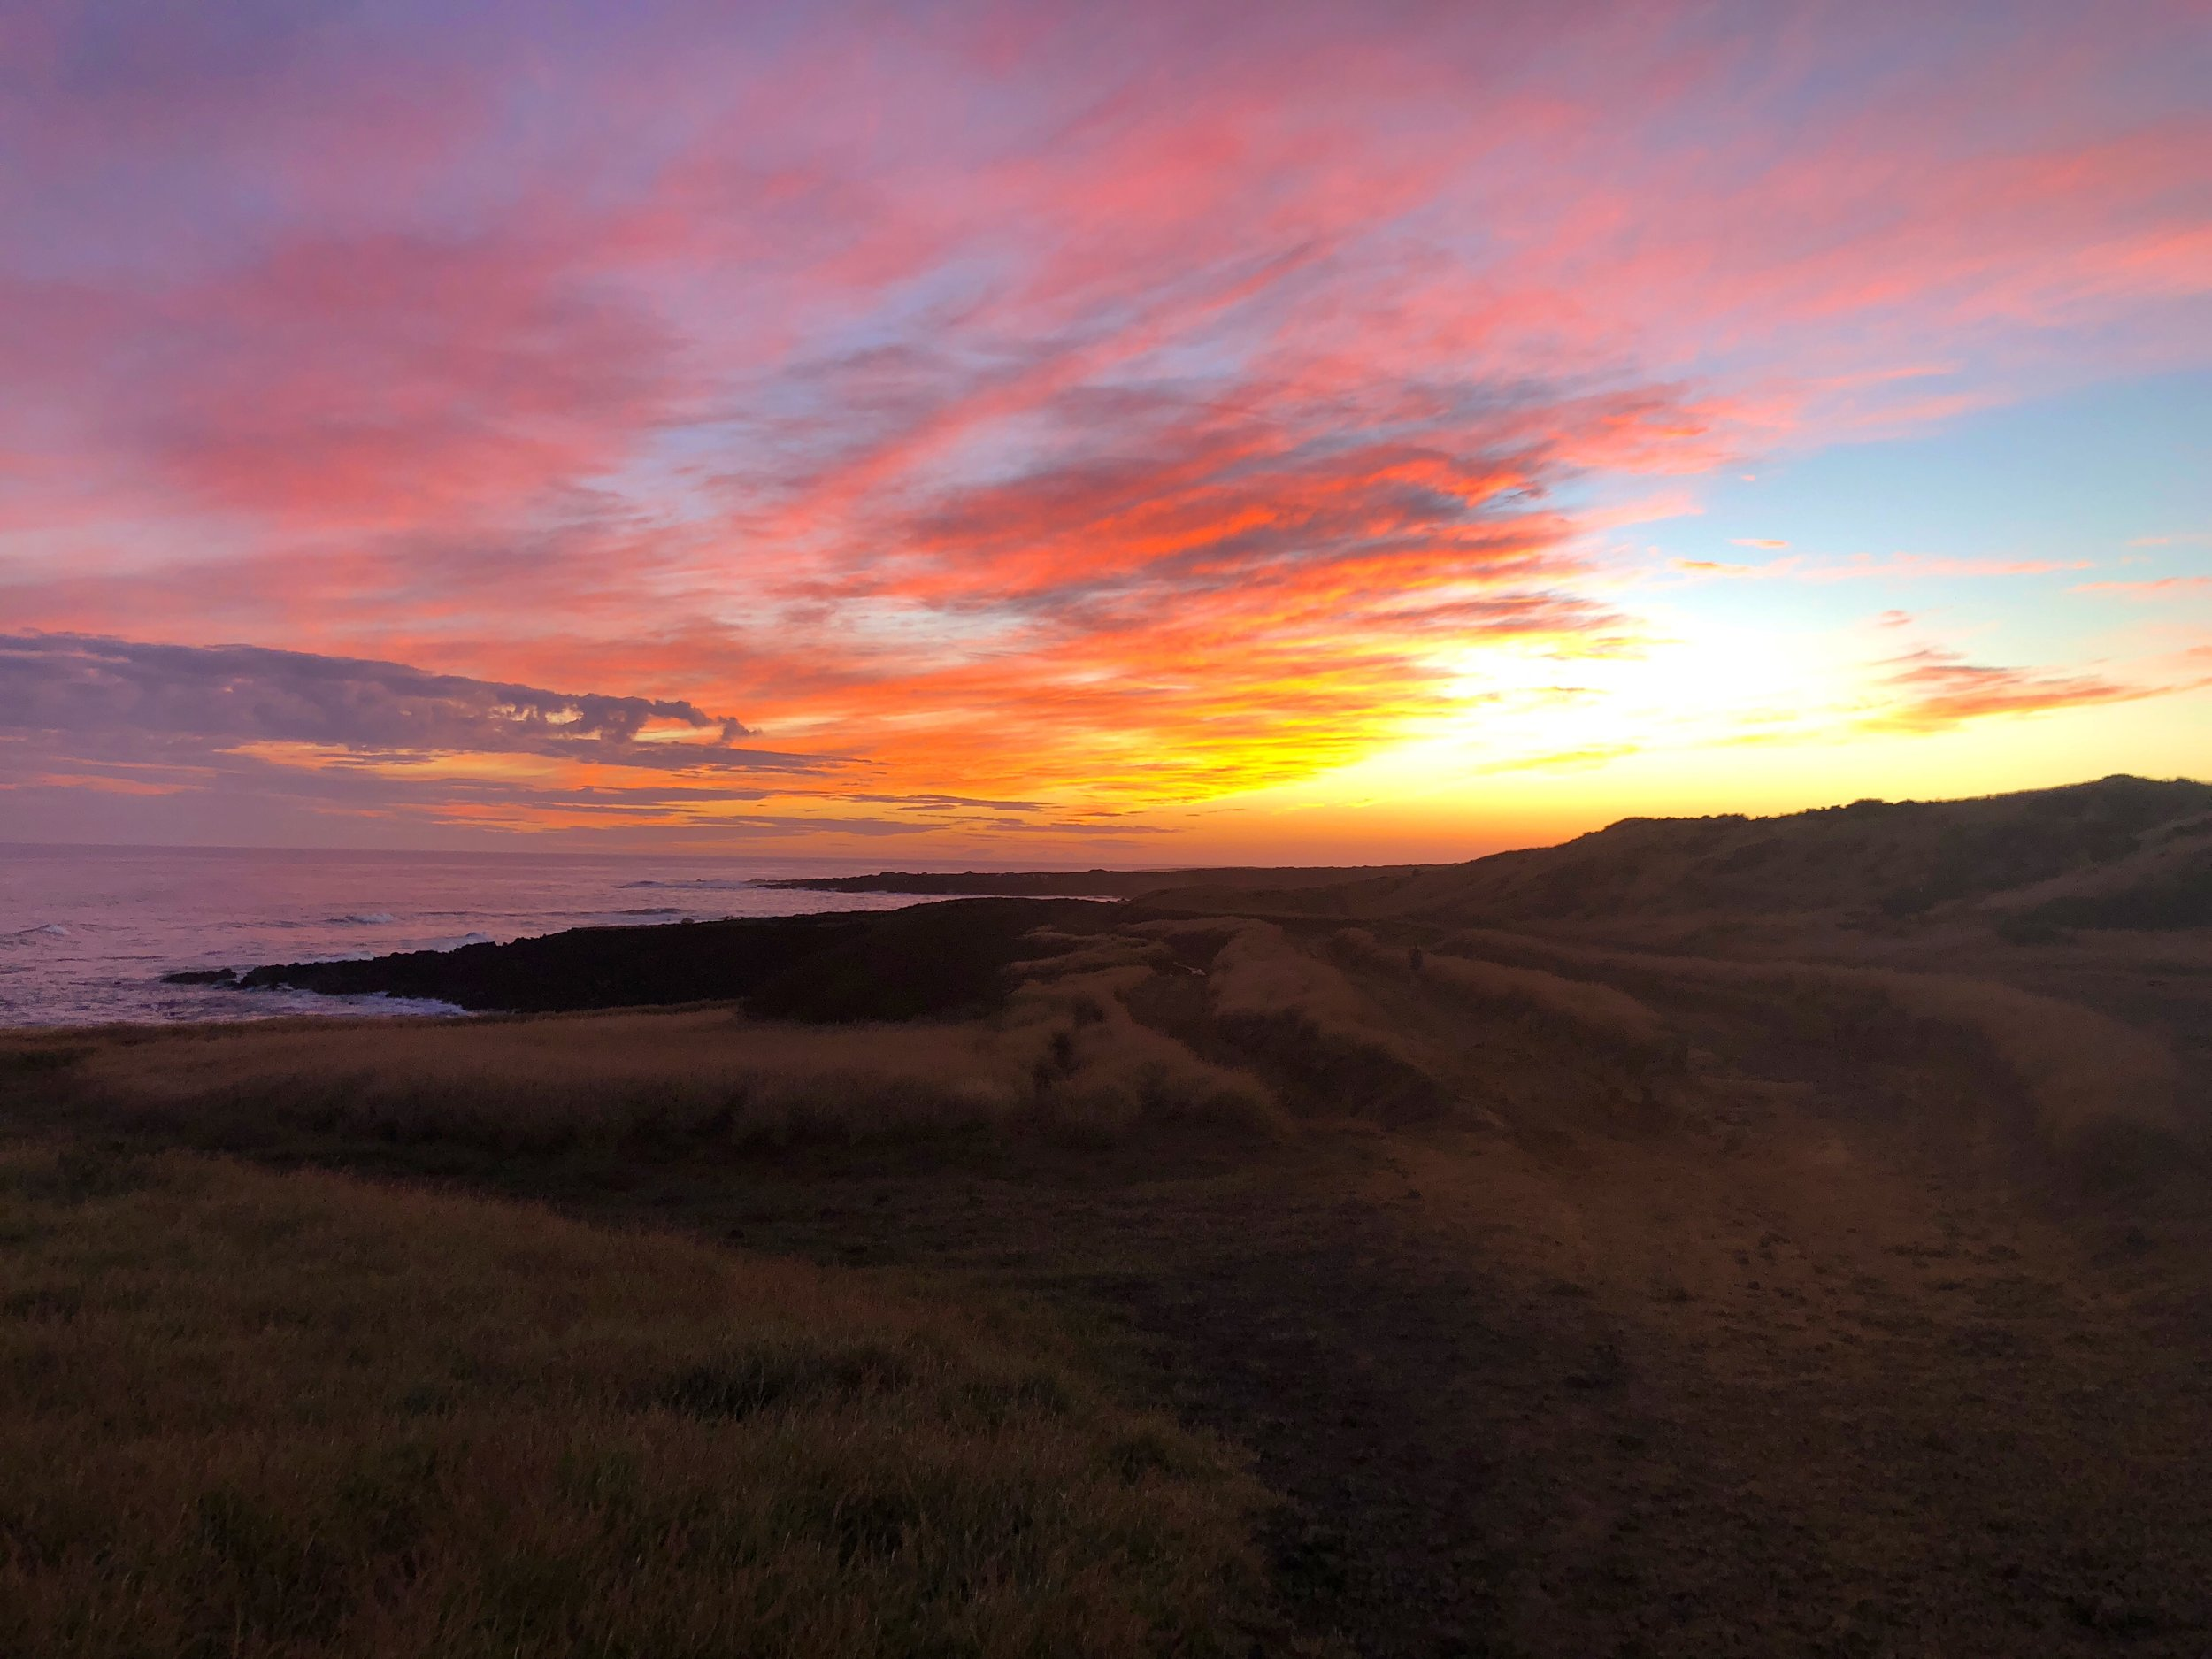 A truely magnificent sunset at we left Green Sand Beach.